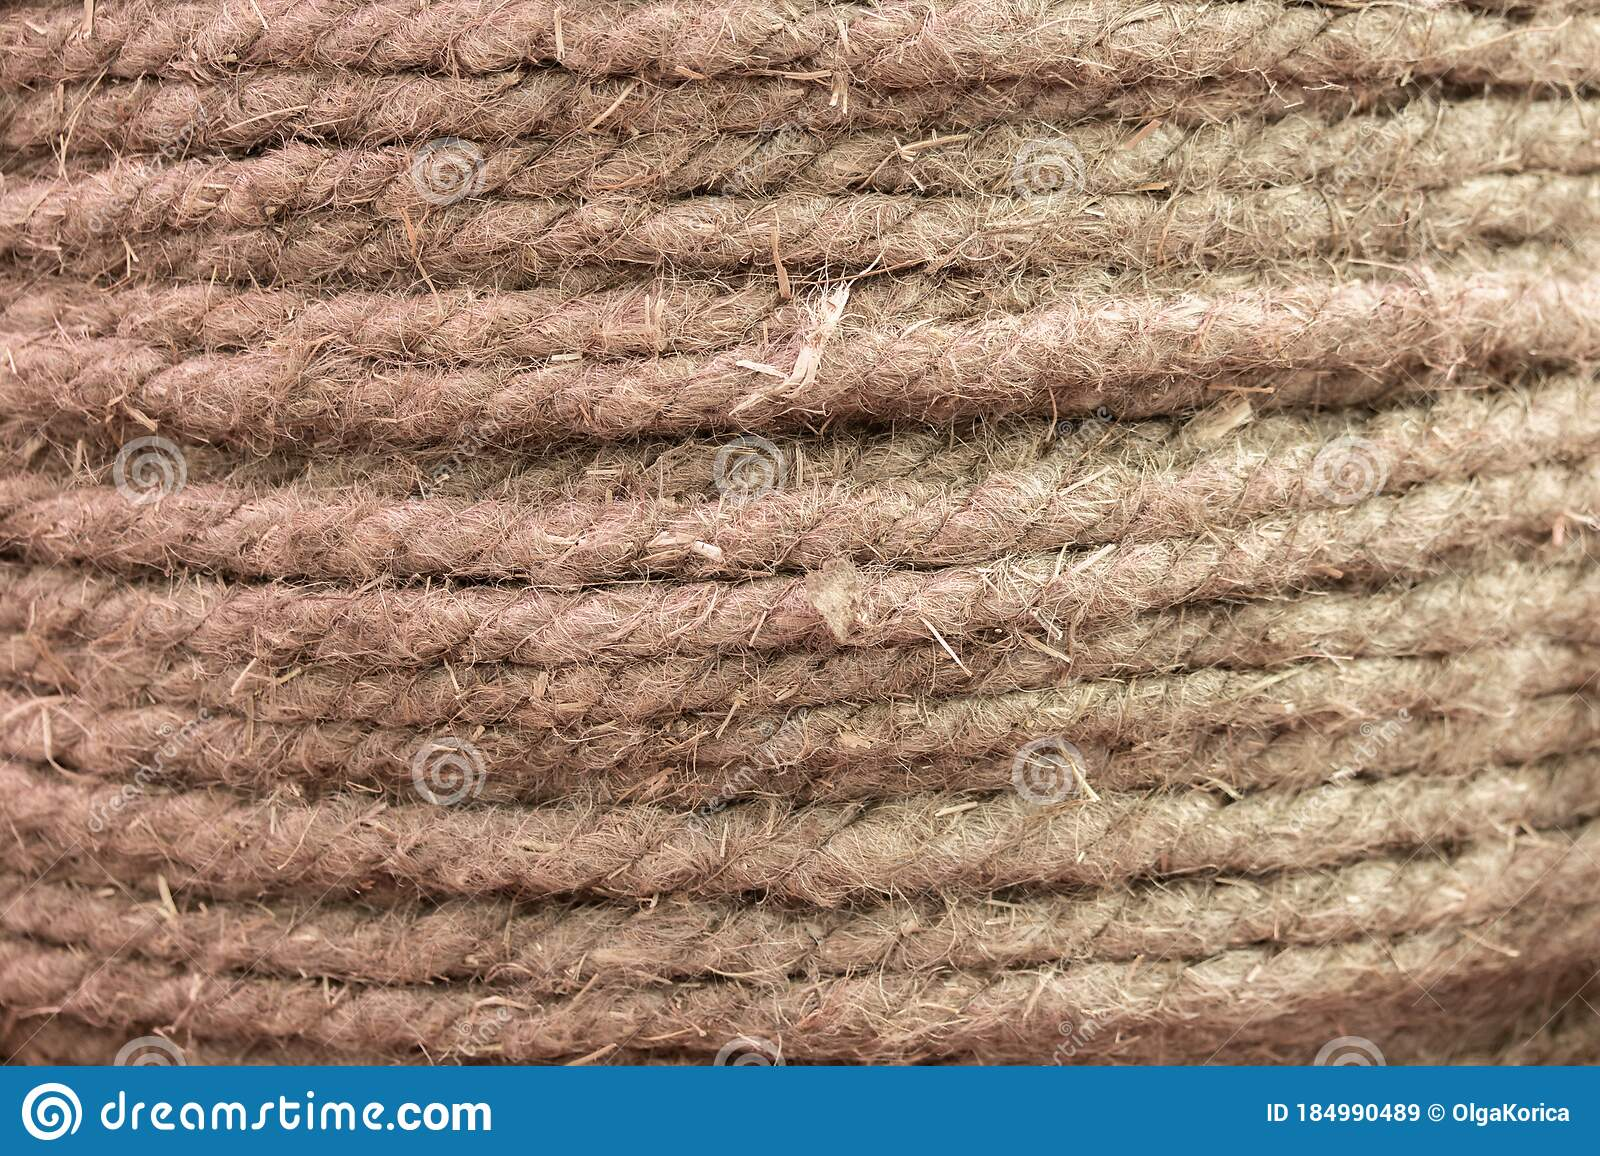 Natural Hemp Rope Hemp Fiber Woven Into A Thick Thread Closeup Textured Effect Natural Plant Material Jute Rope Texture Stock Image Image Of String Surface 184990489